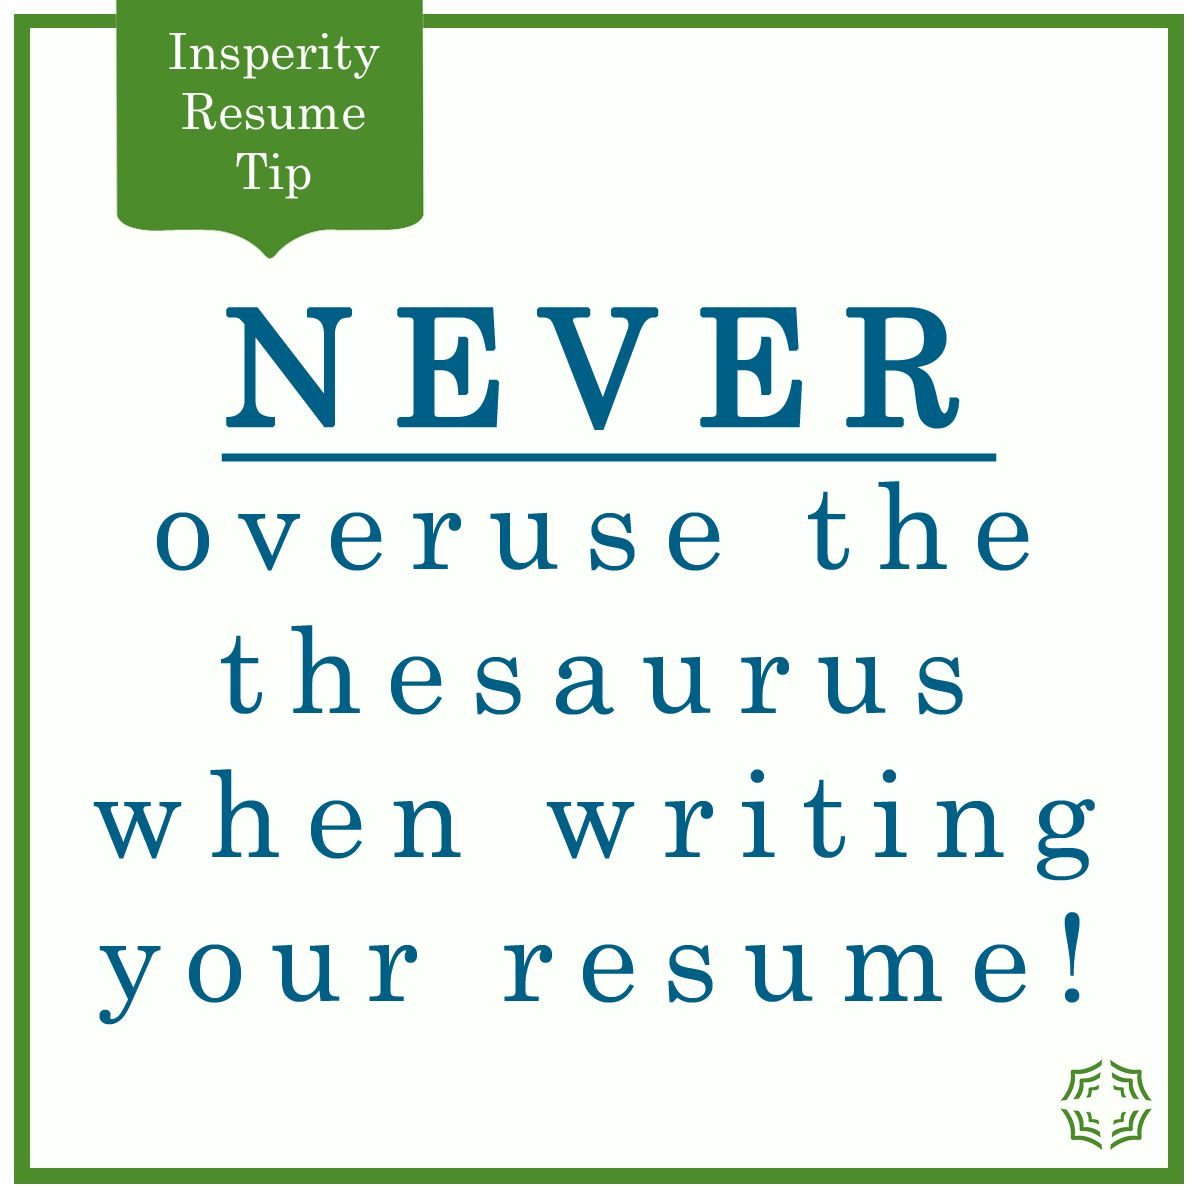 never overuse the thesaurus when writing your resume tips from